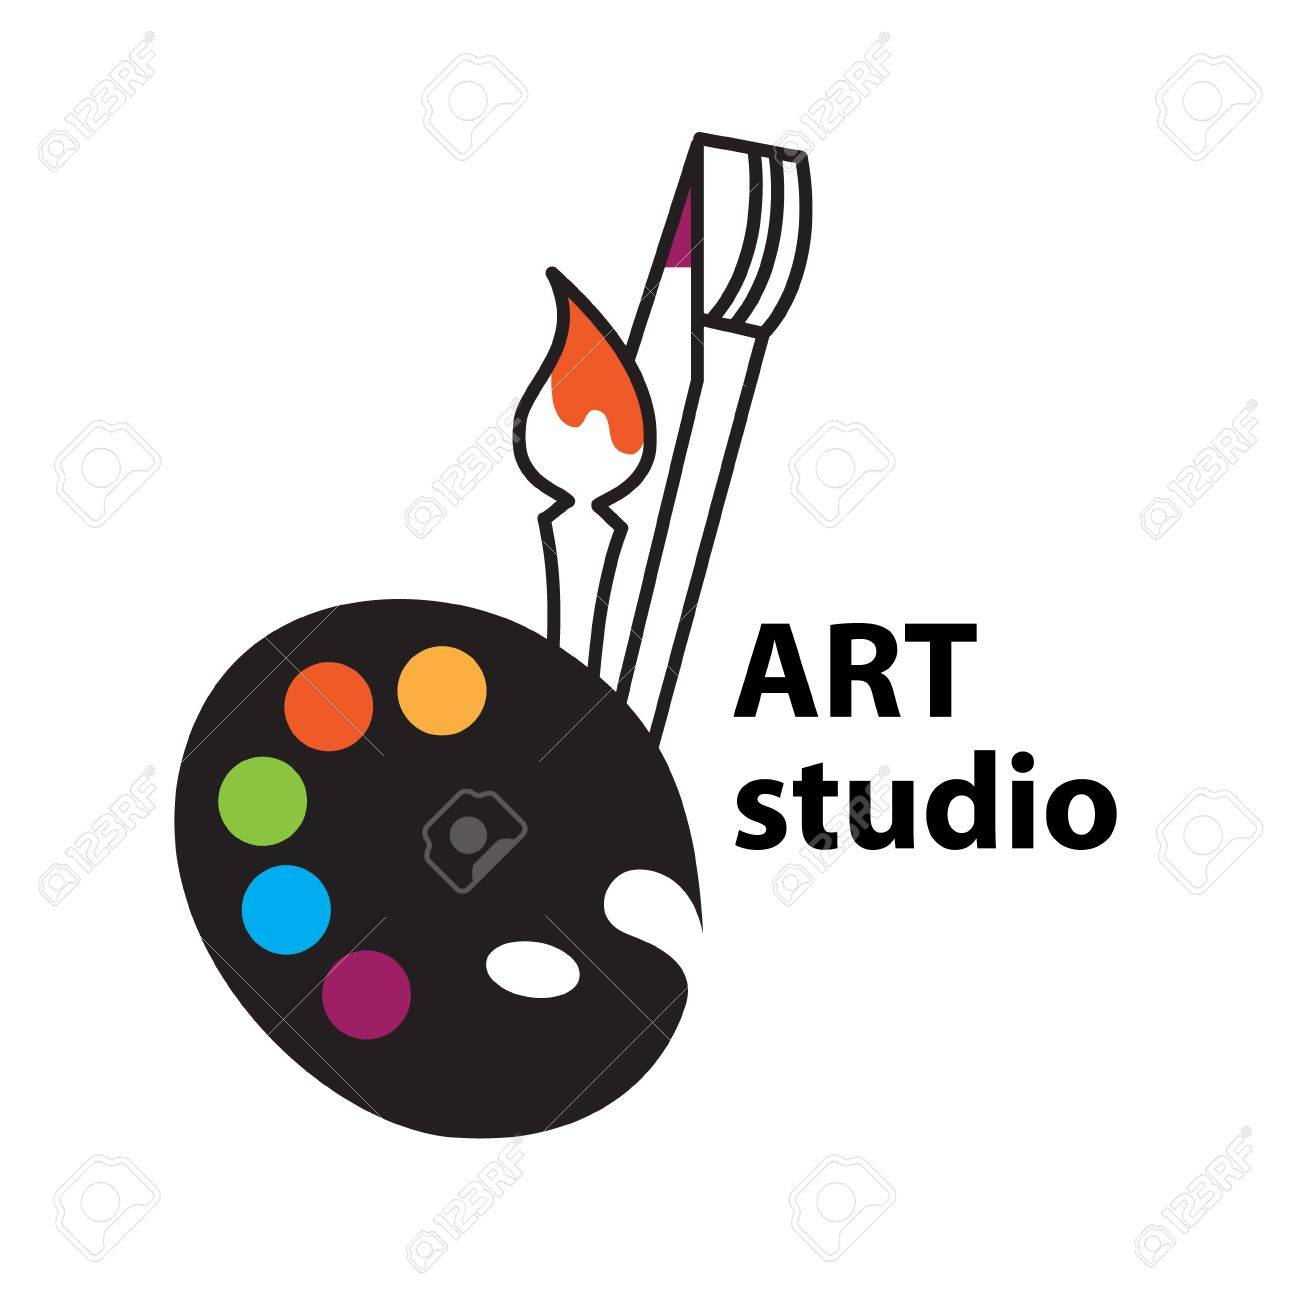 Art-studio sign - Brush and Palette Icon Stock Vector - 17249442